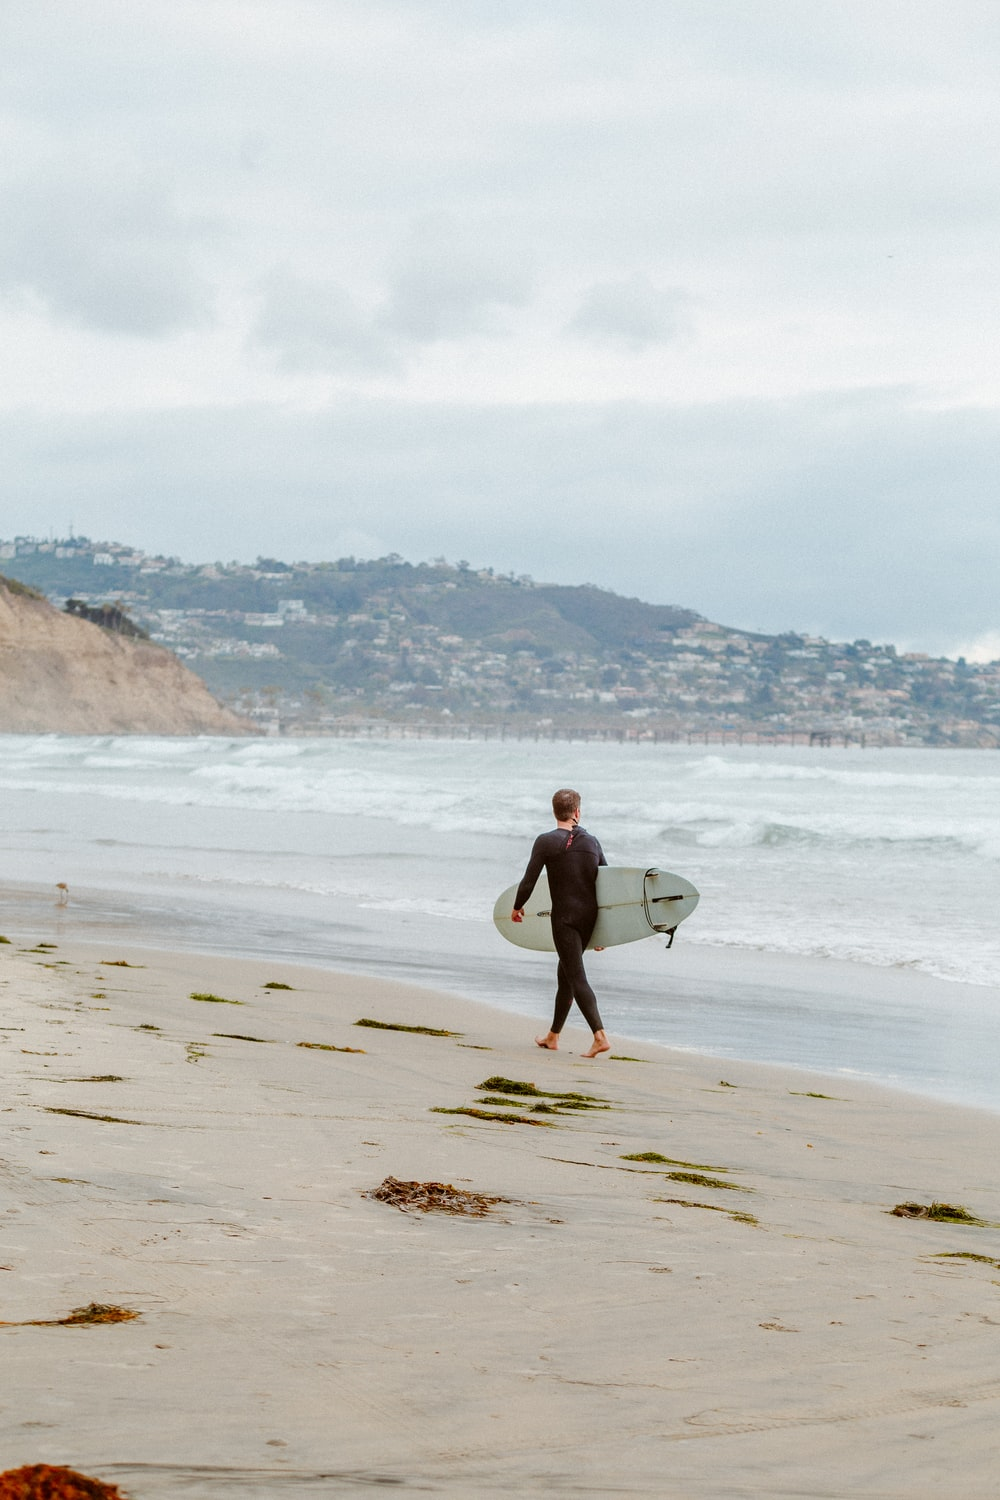 man in black shorts carrying white surfboard walking on beach during daytime